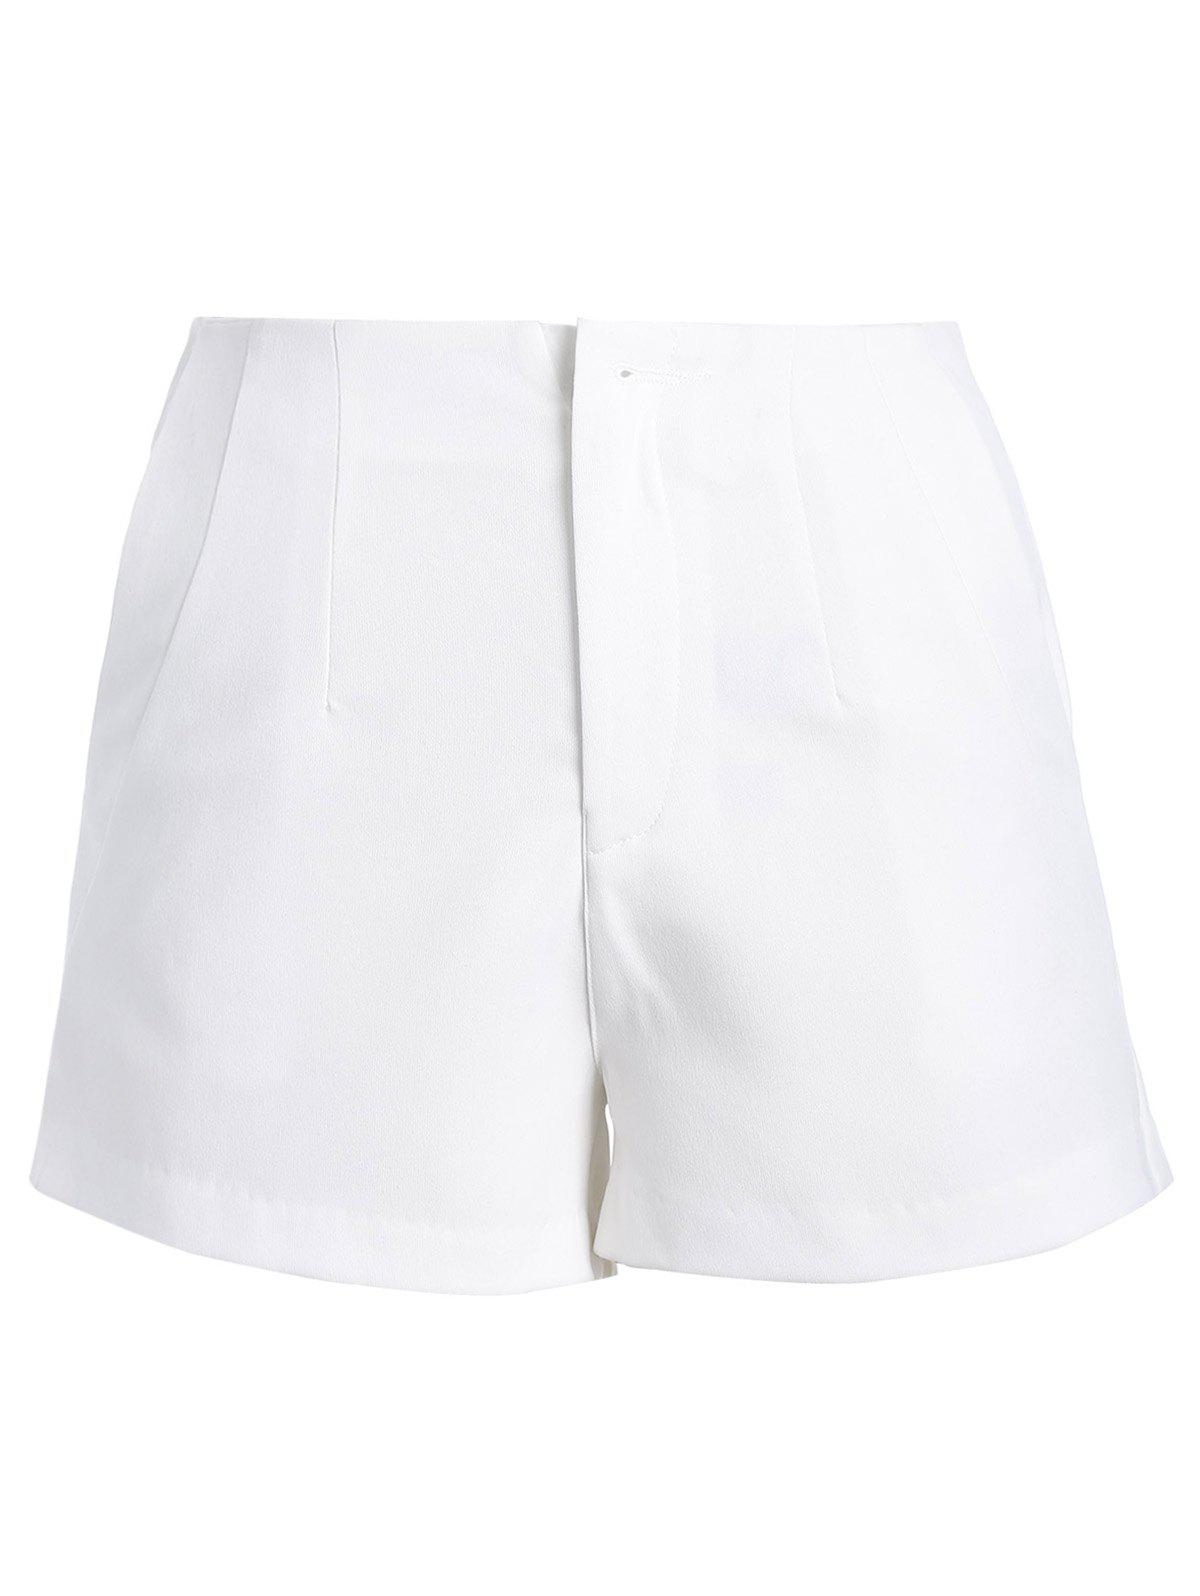 Stylish Women's Solid Color Zipper Fly Shorts - WHITE L